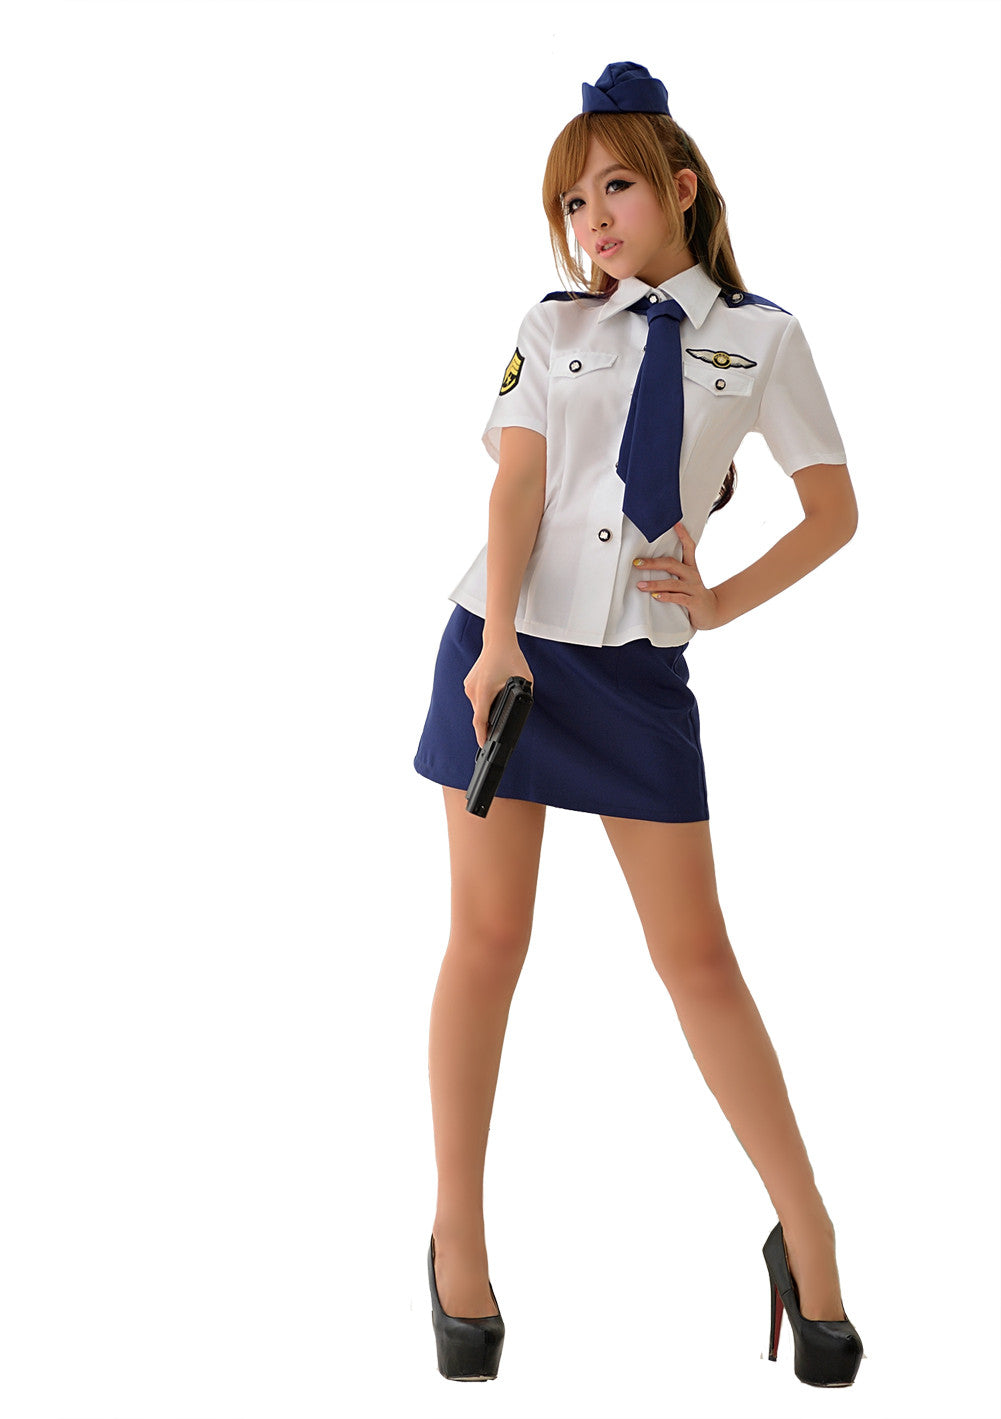 LINGERIECATS Sexy Clear Sky Air Force Officer Cosplay Costume Set - LingerieCats